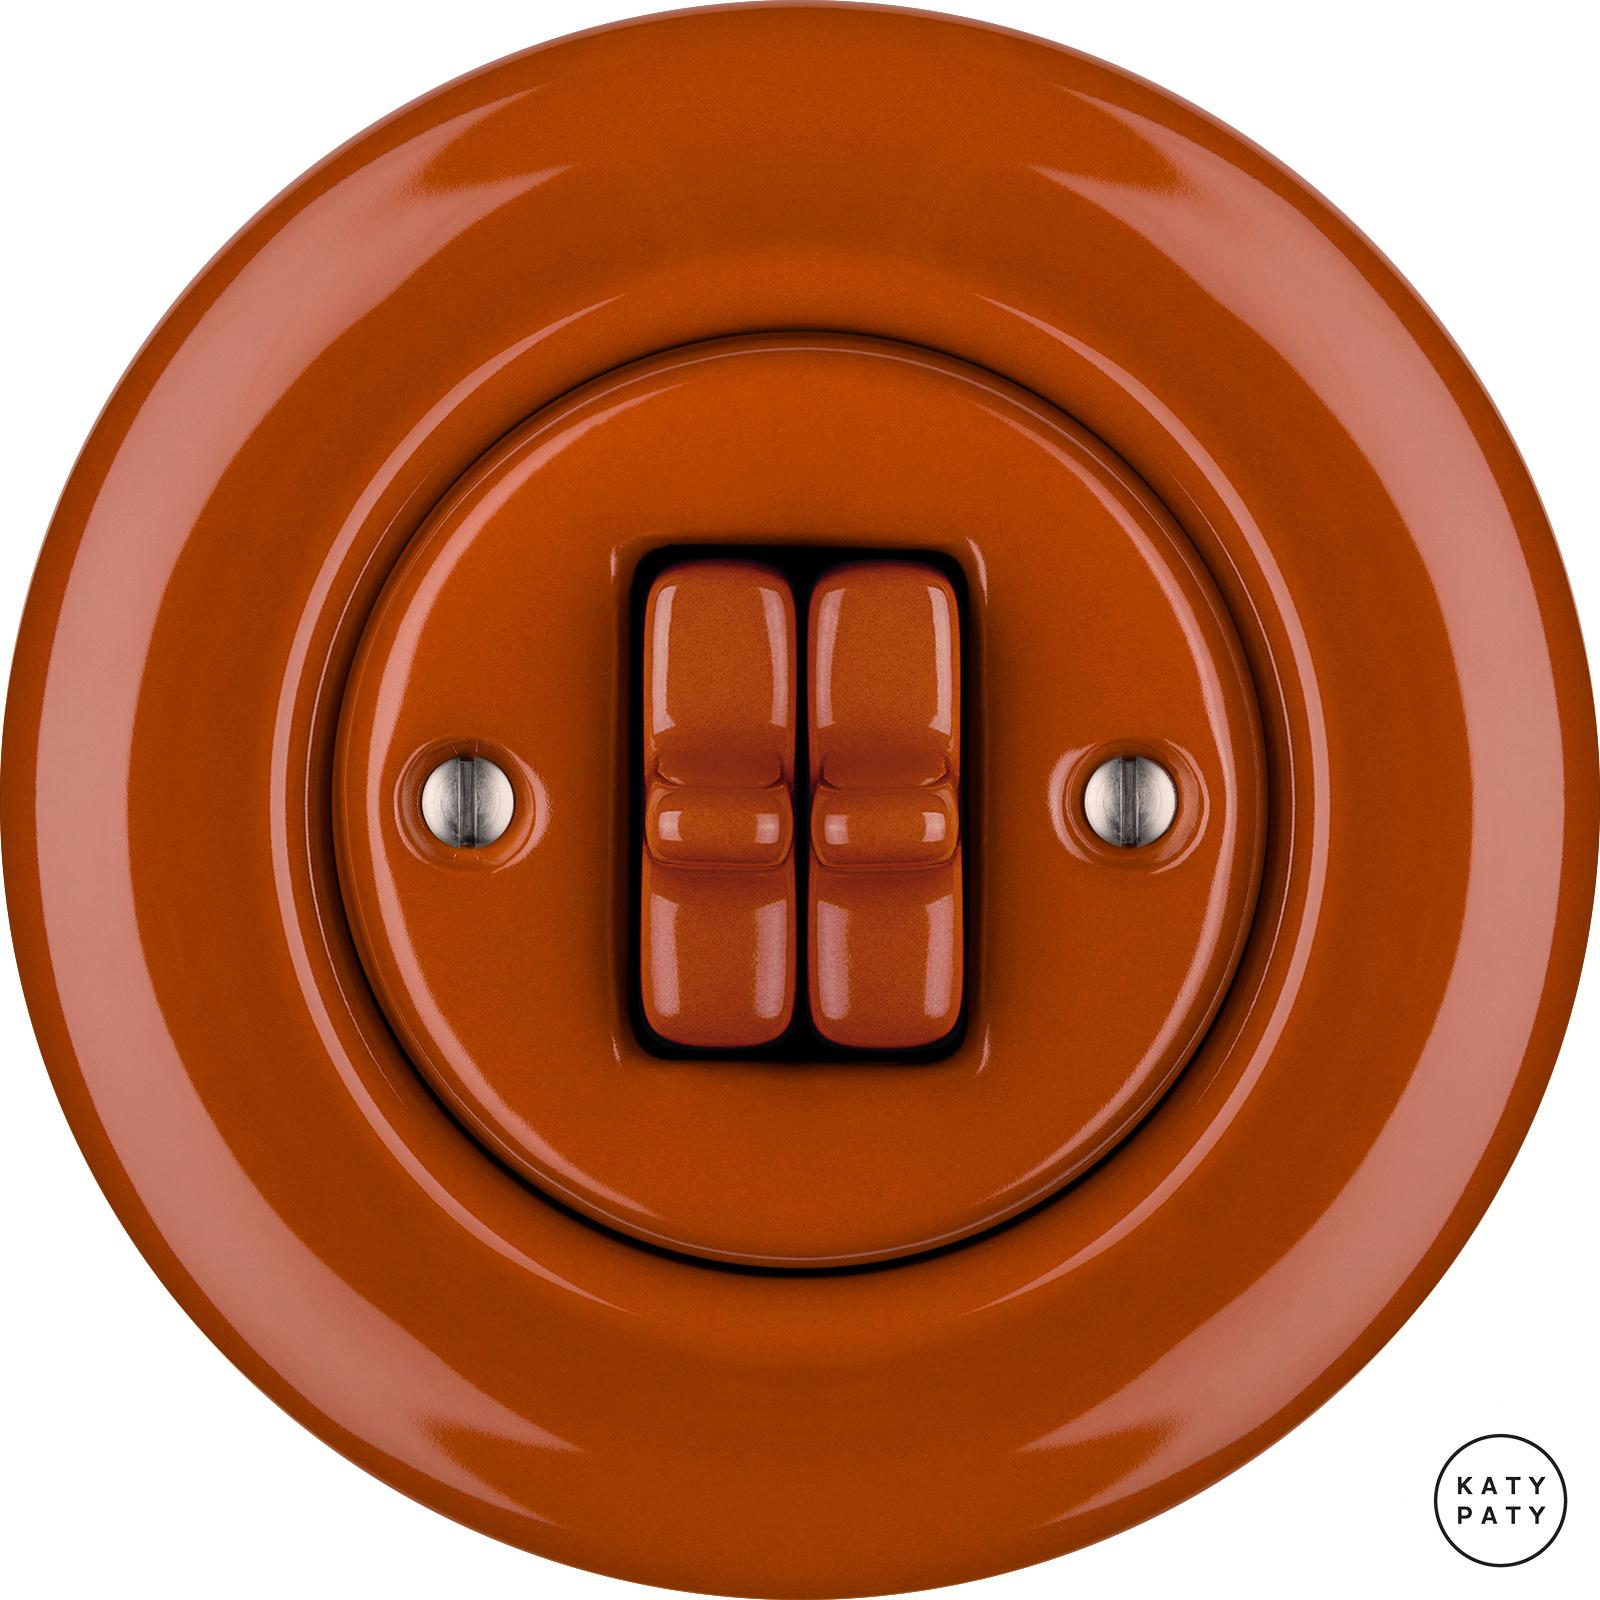 Porcelain toggle switches - a double gang ()  - AURANTIA | Katy Paty